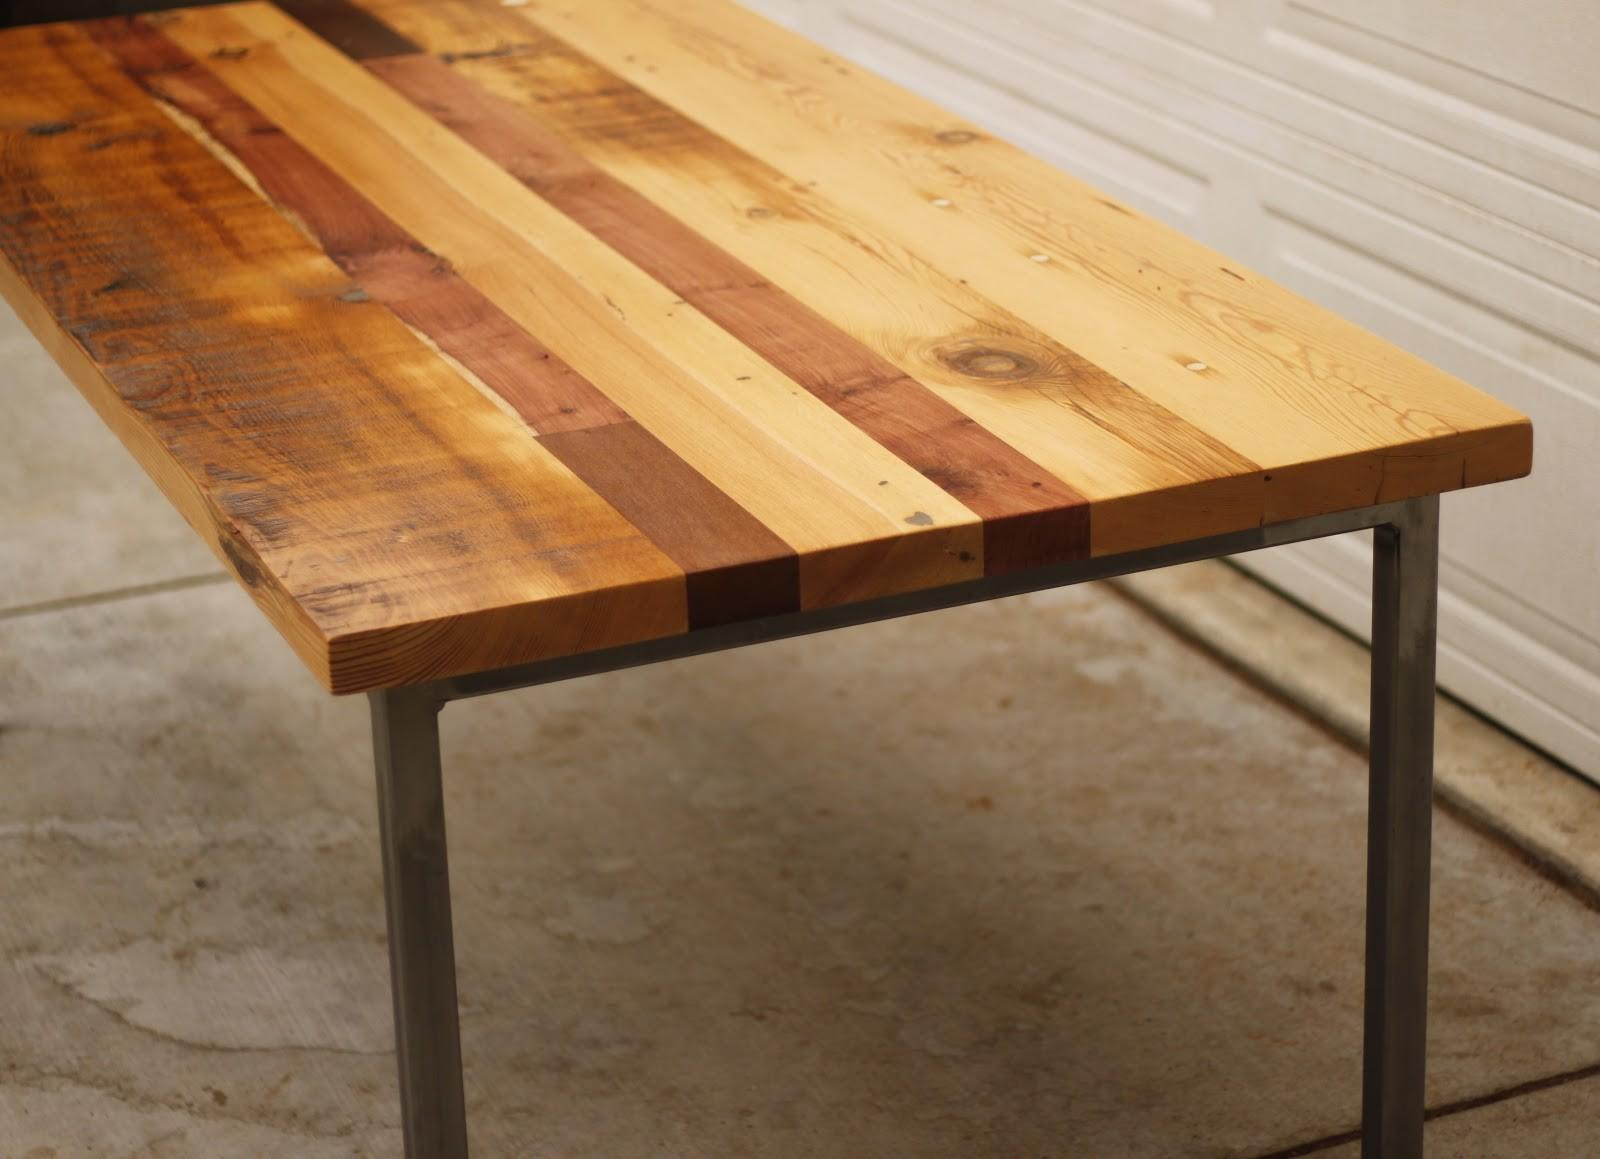 Reclaimed Wood Furniture Ideas Interior Home